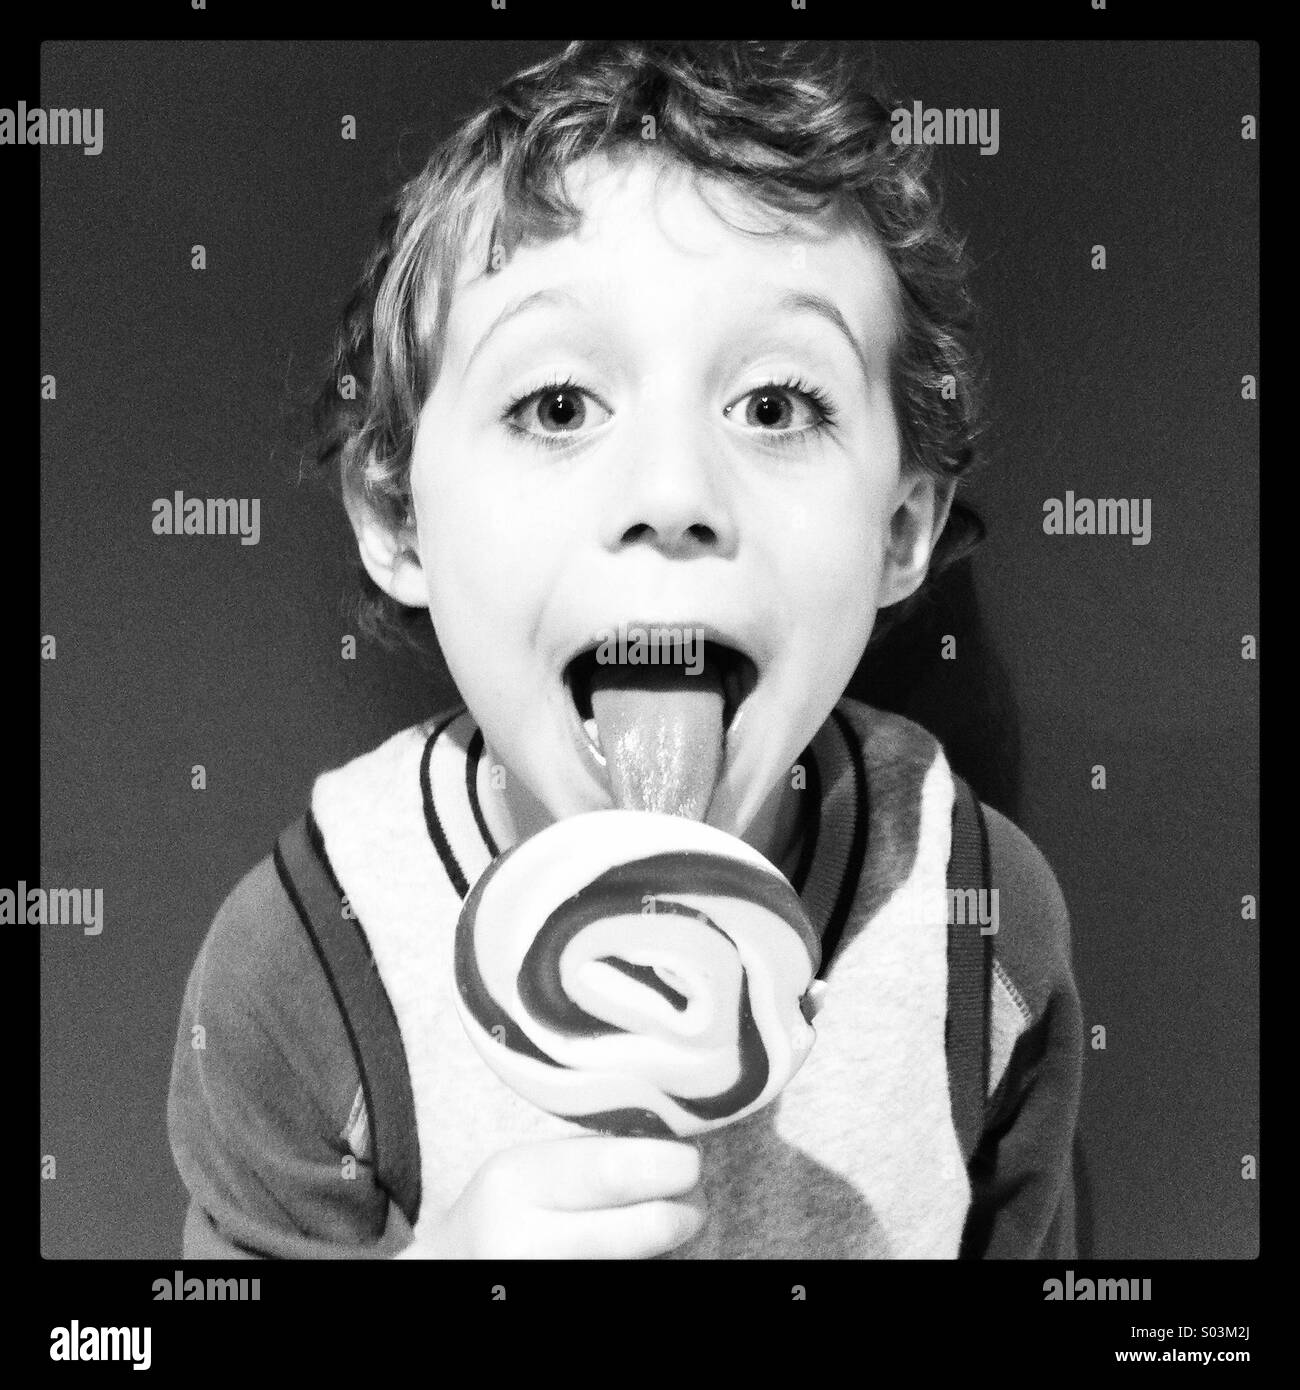 Boy licking a Lollypop - Stock Image